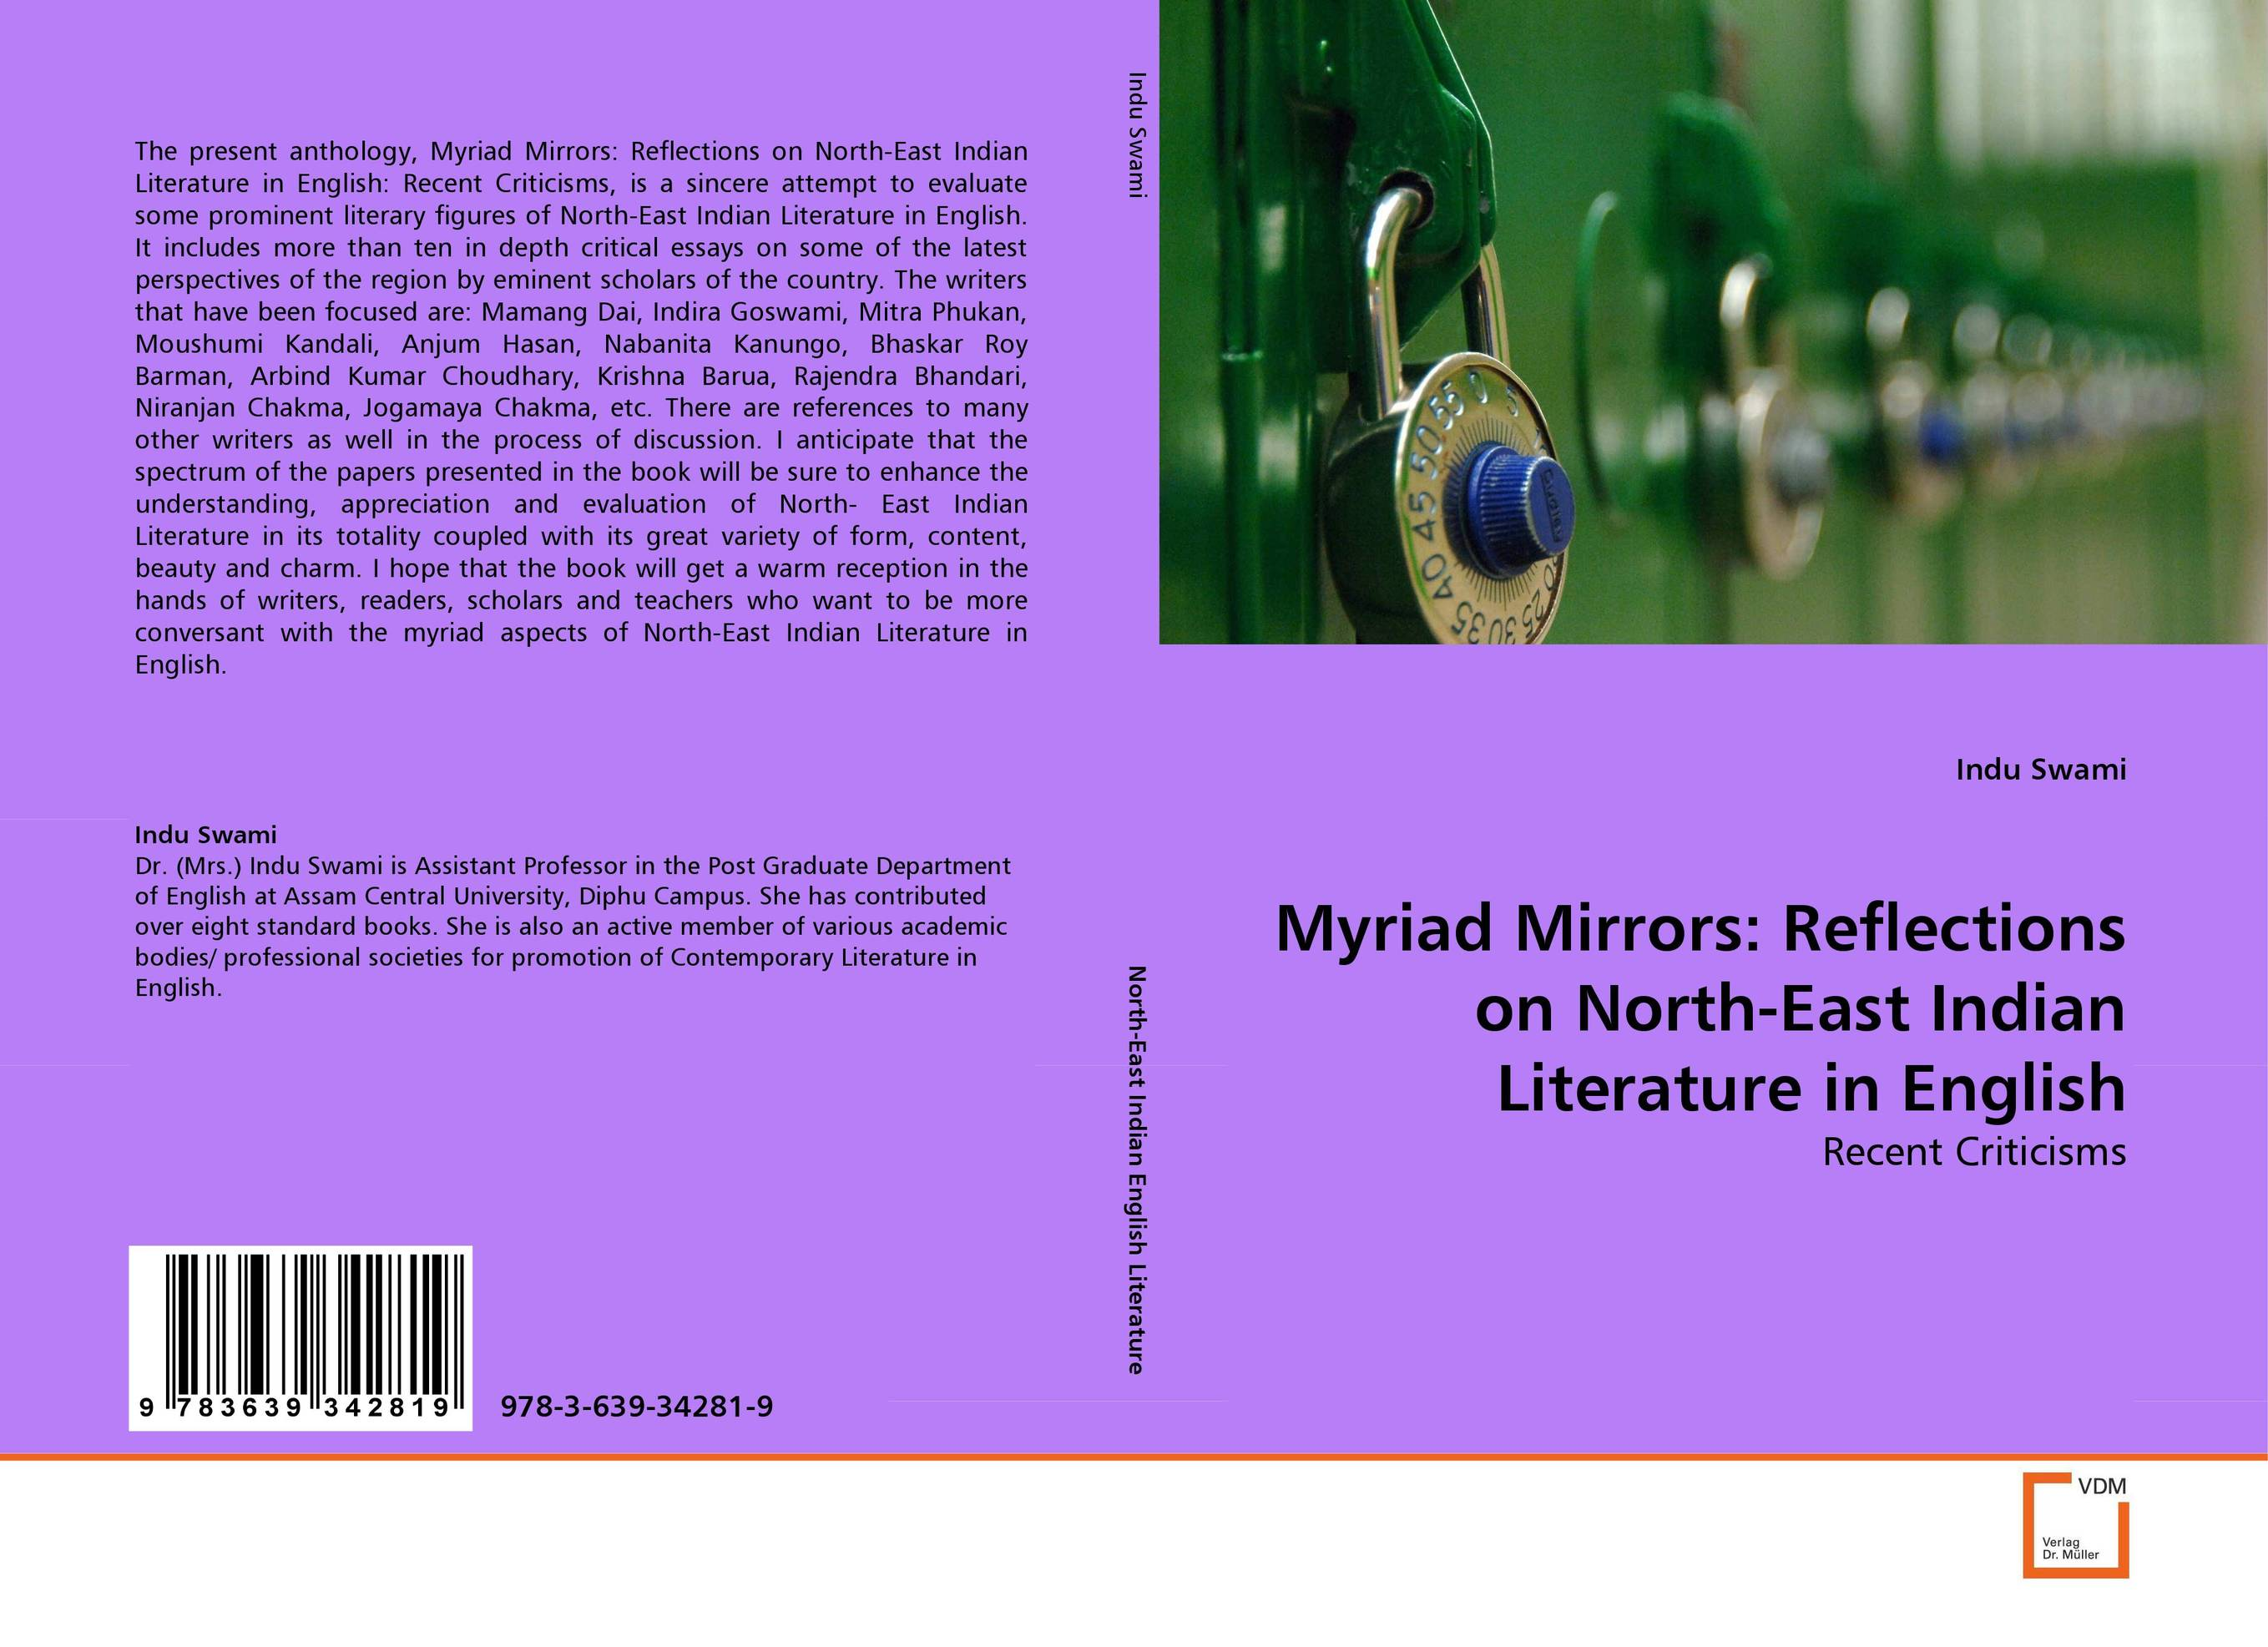 Myriad Mirrors: Reflections on North-East Indian Literature in English binod kumar and anil pandey genetic divergence and heterosis in indian mustard